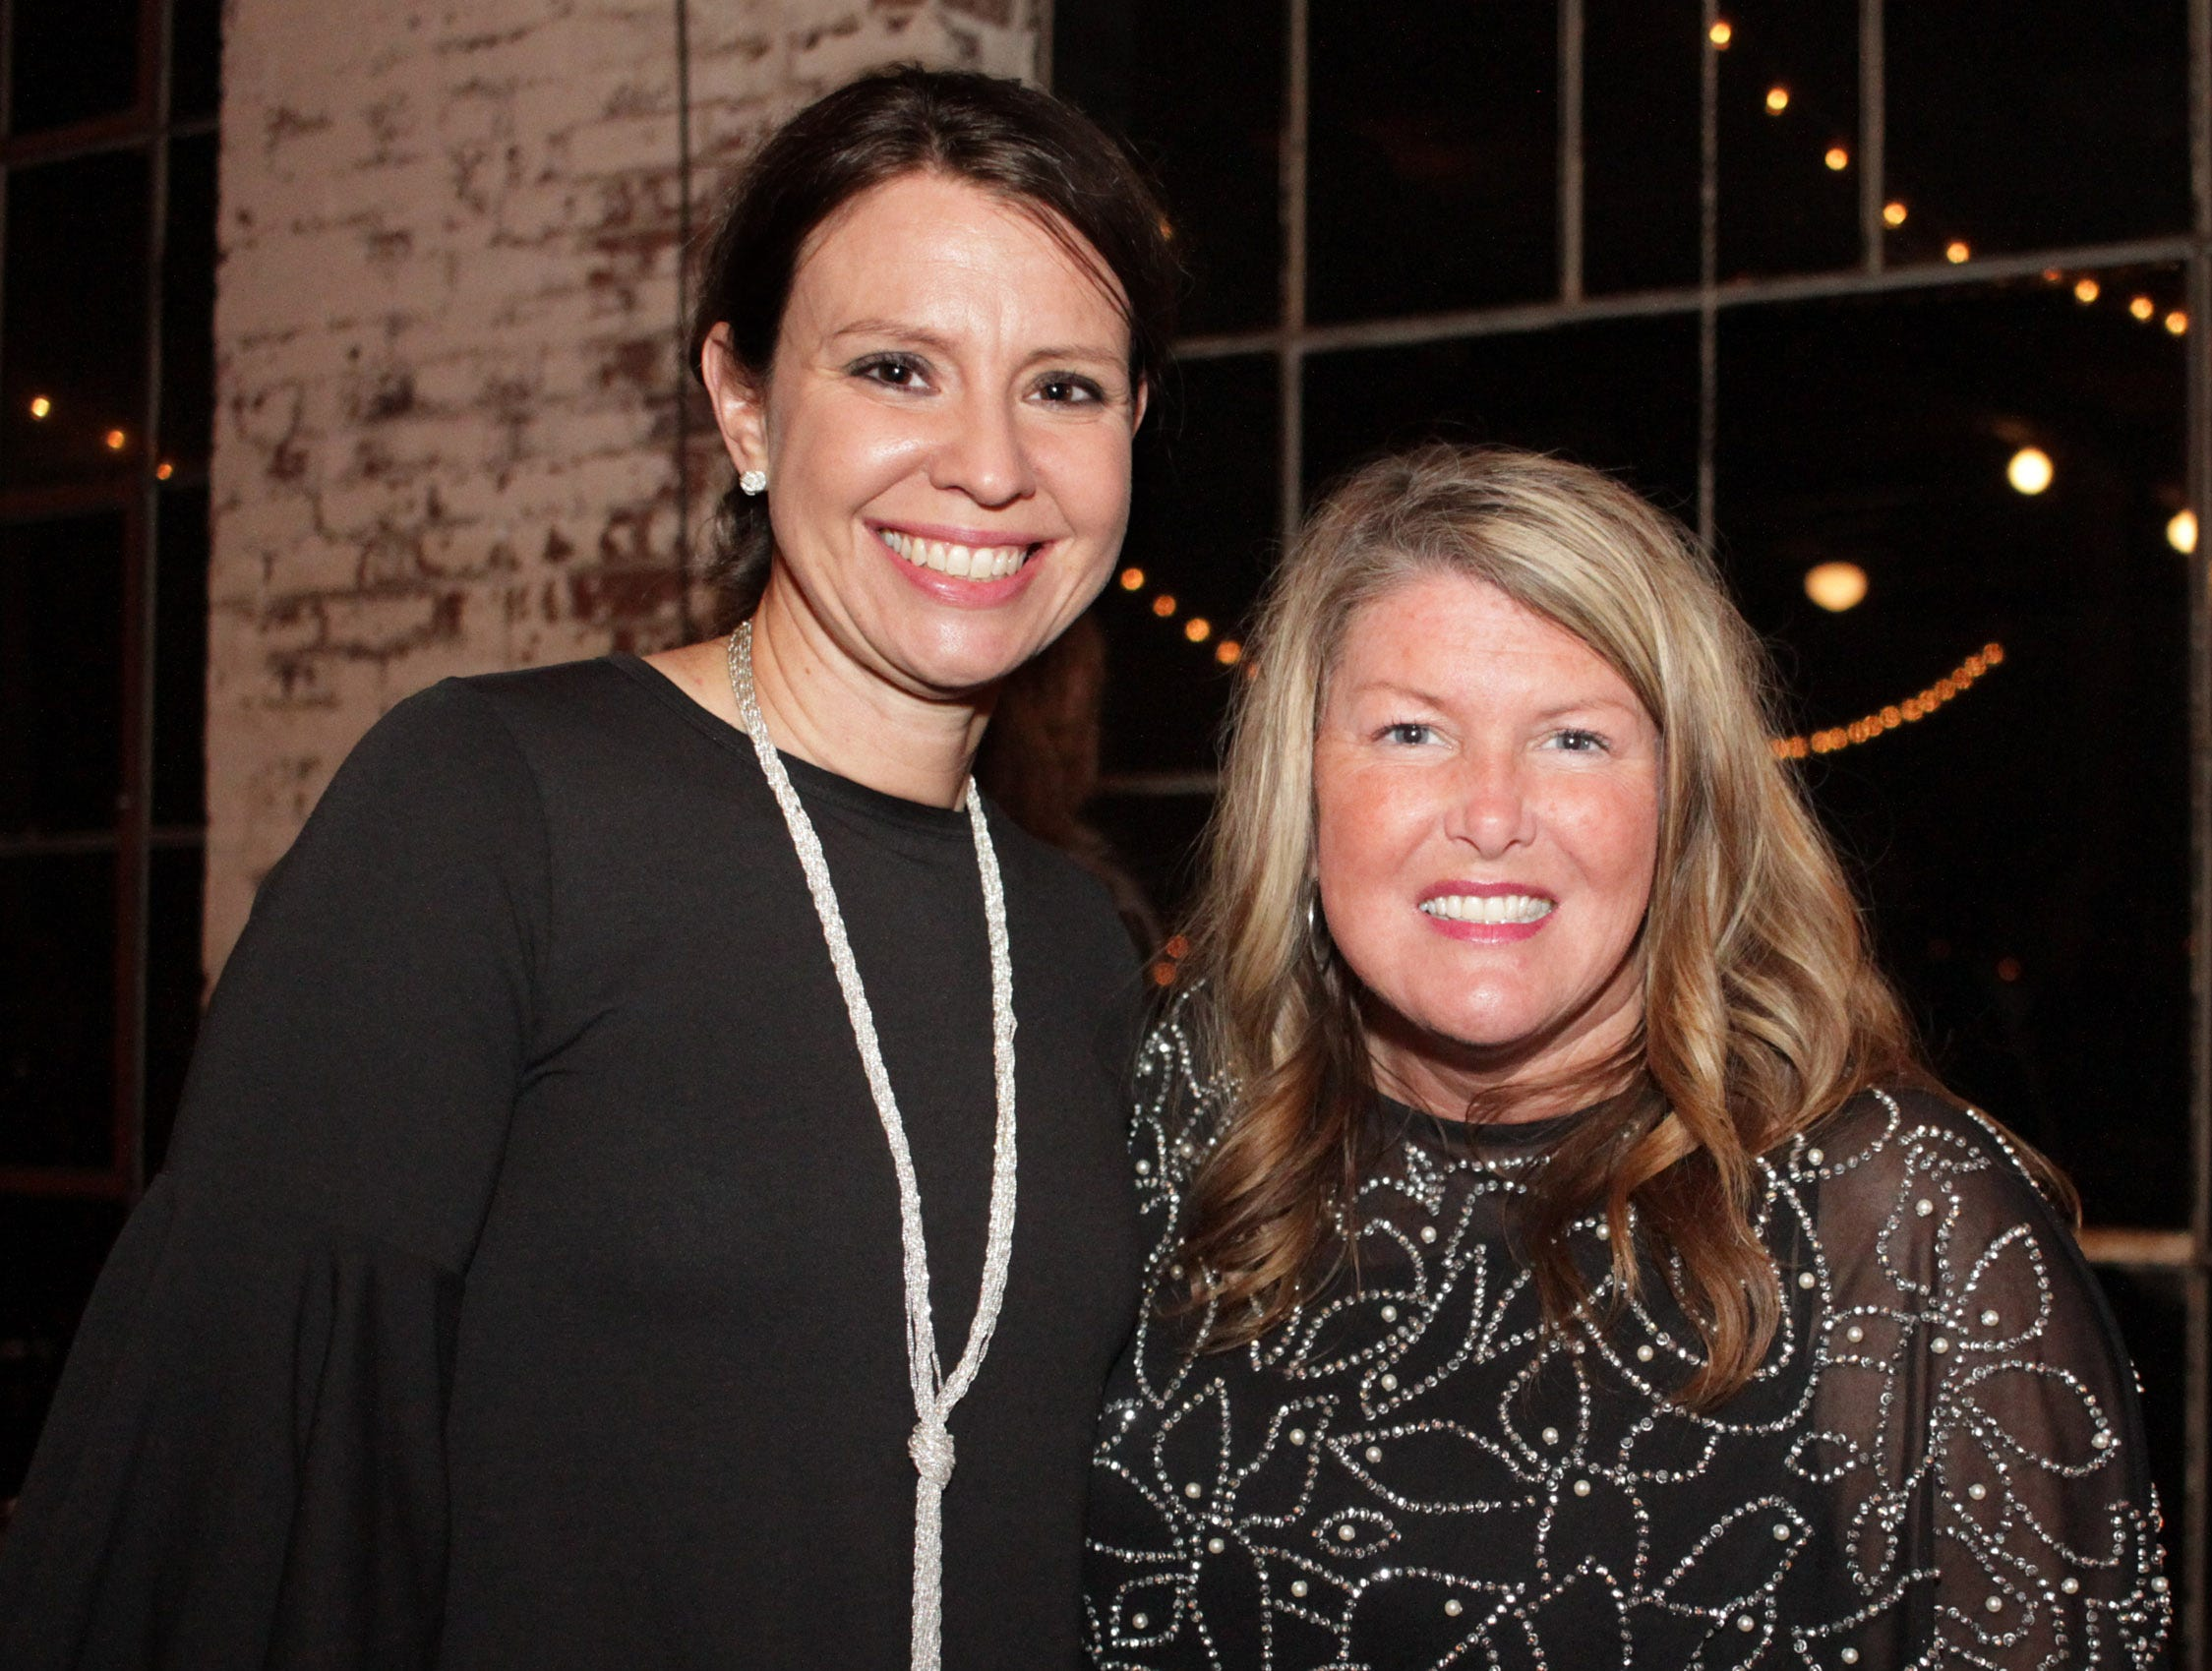 Tiffany Bandy and Misty Donoho at the Green and Gold Gala benefitting Galatin High School on Saturday, March 9, 2019.